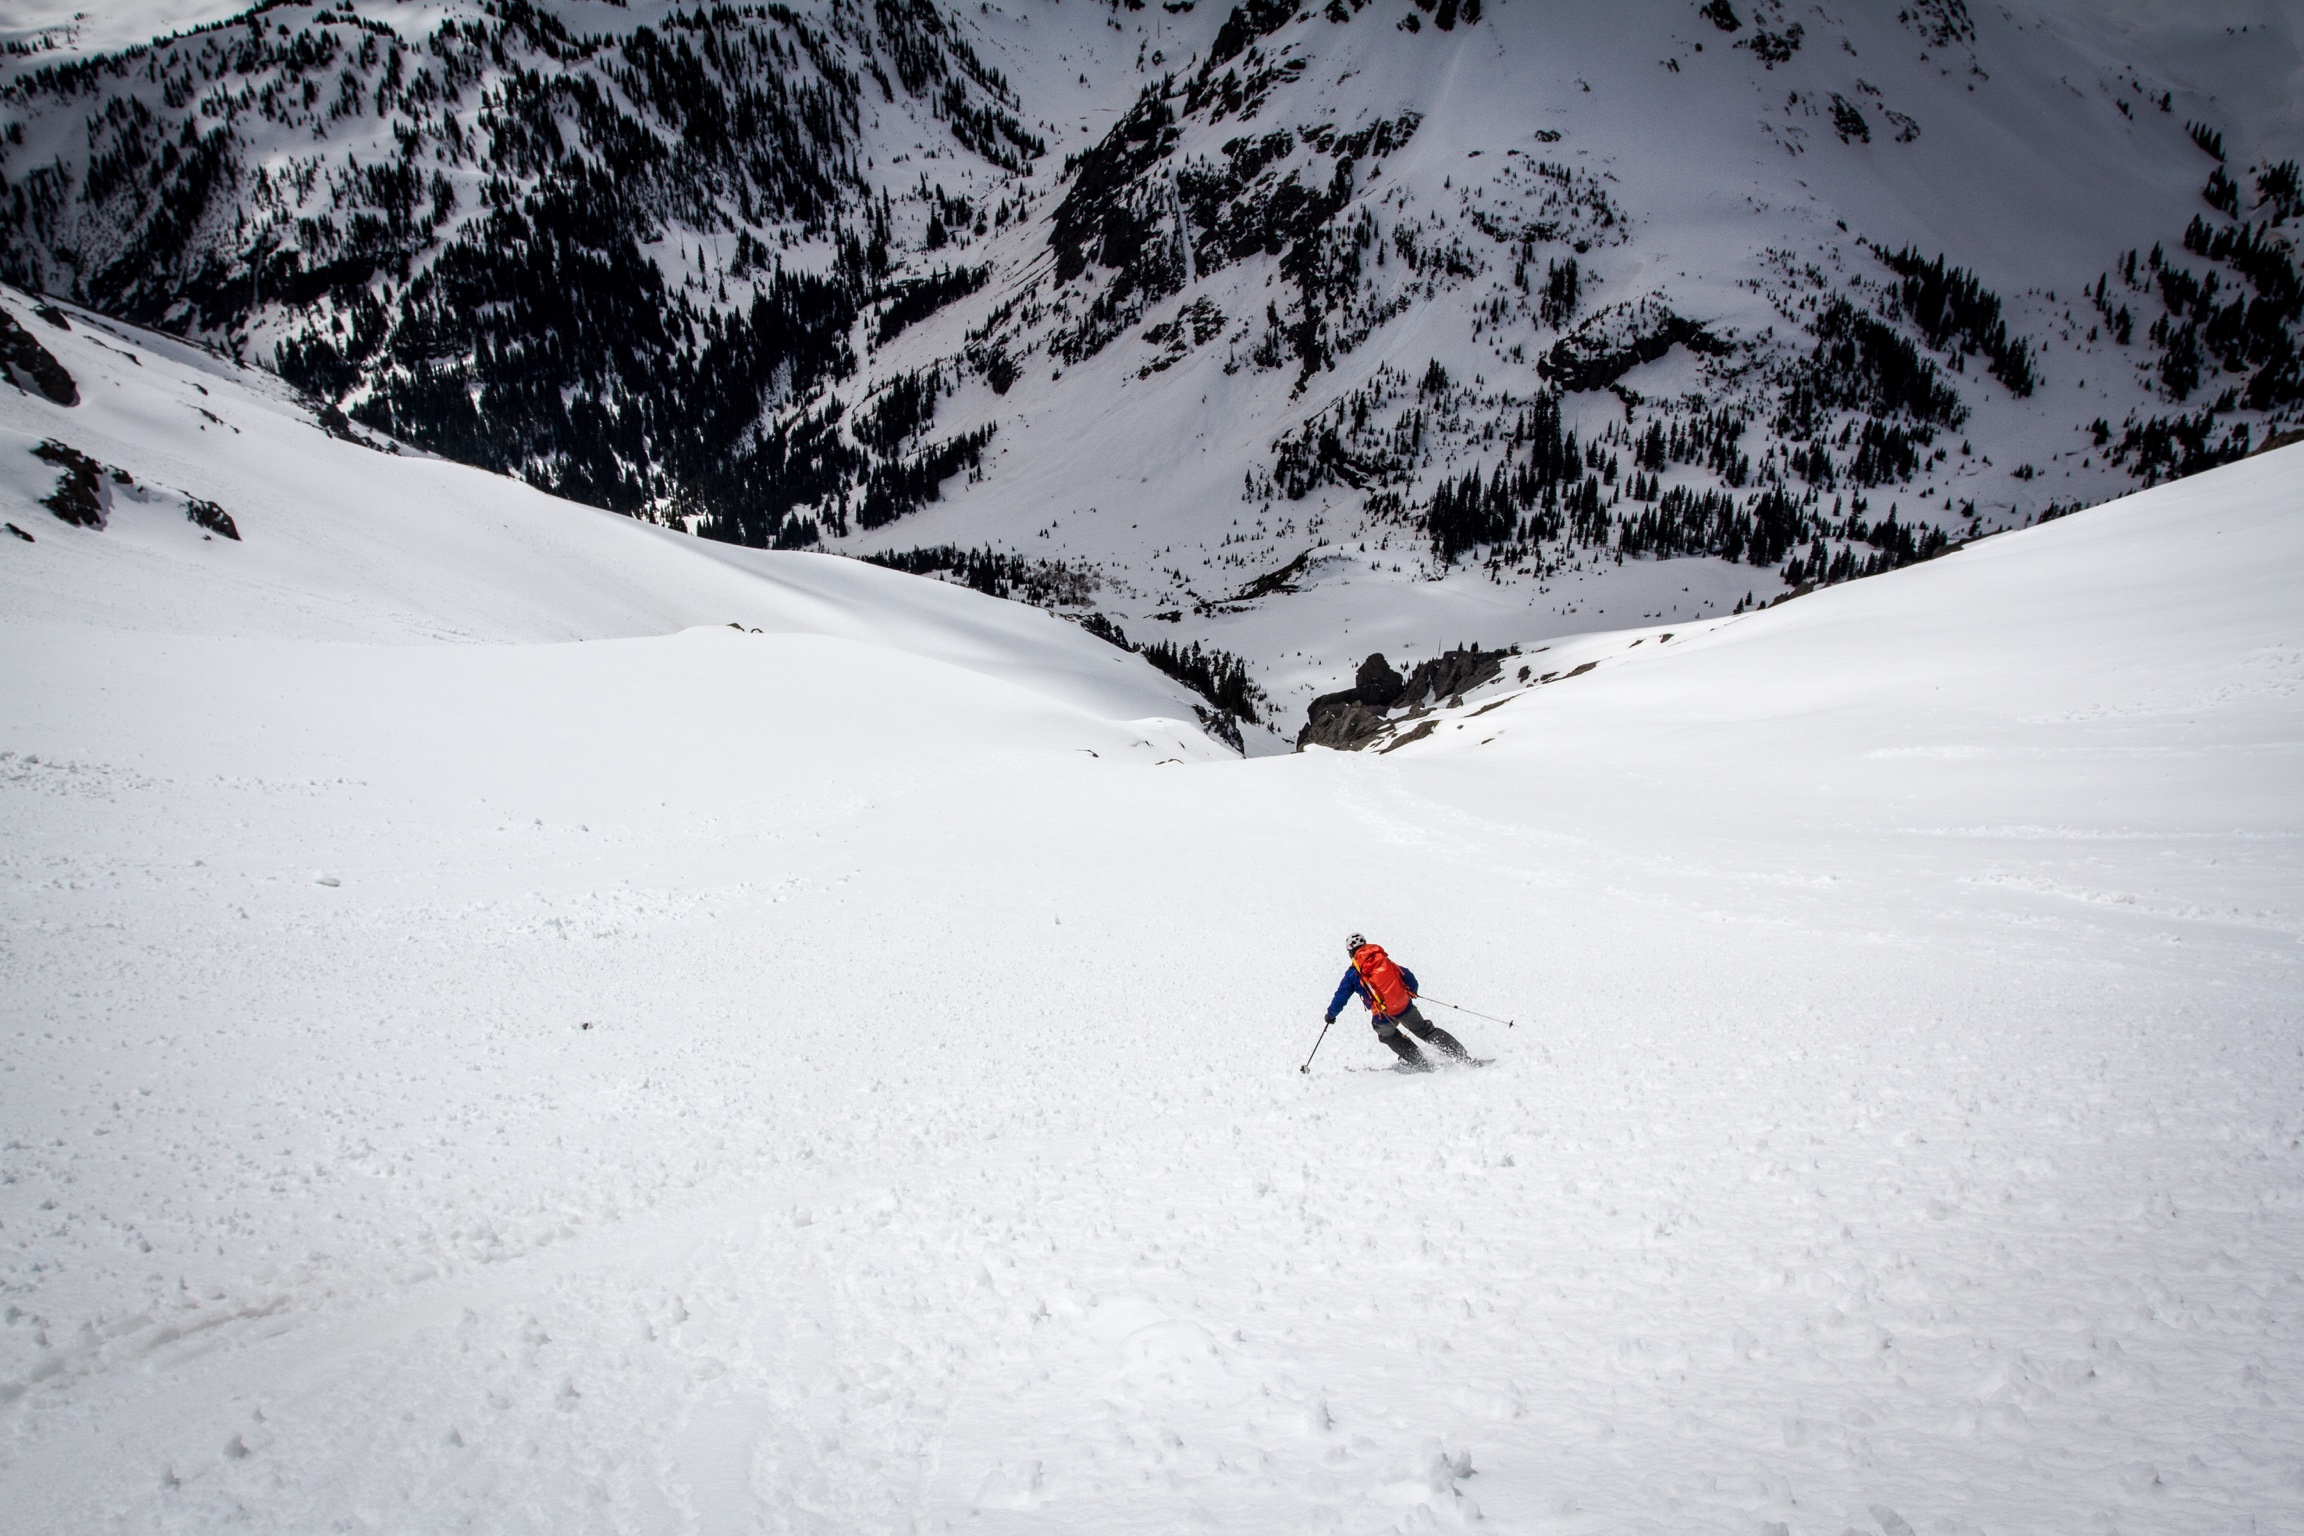 Skiing back into Yankee Boy Basin. Photo: TJ David